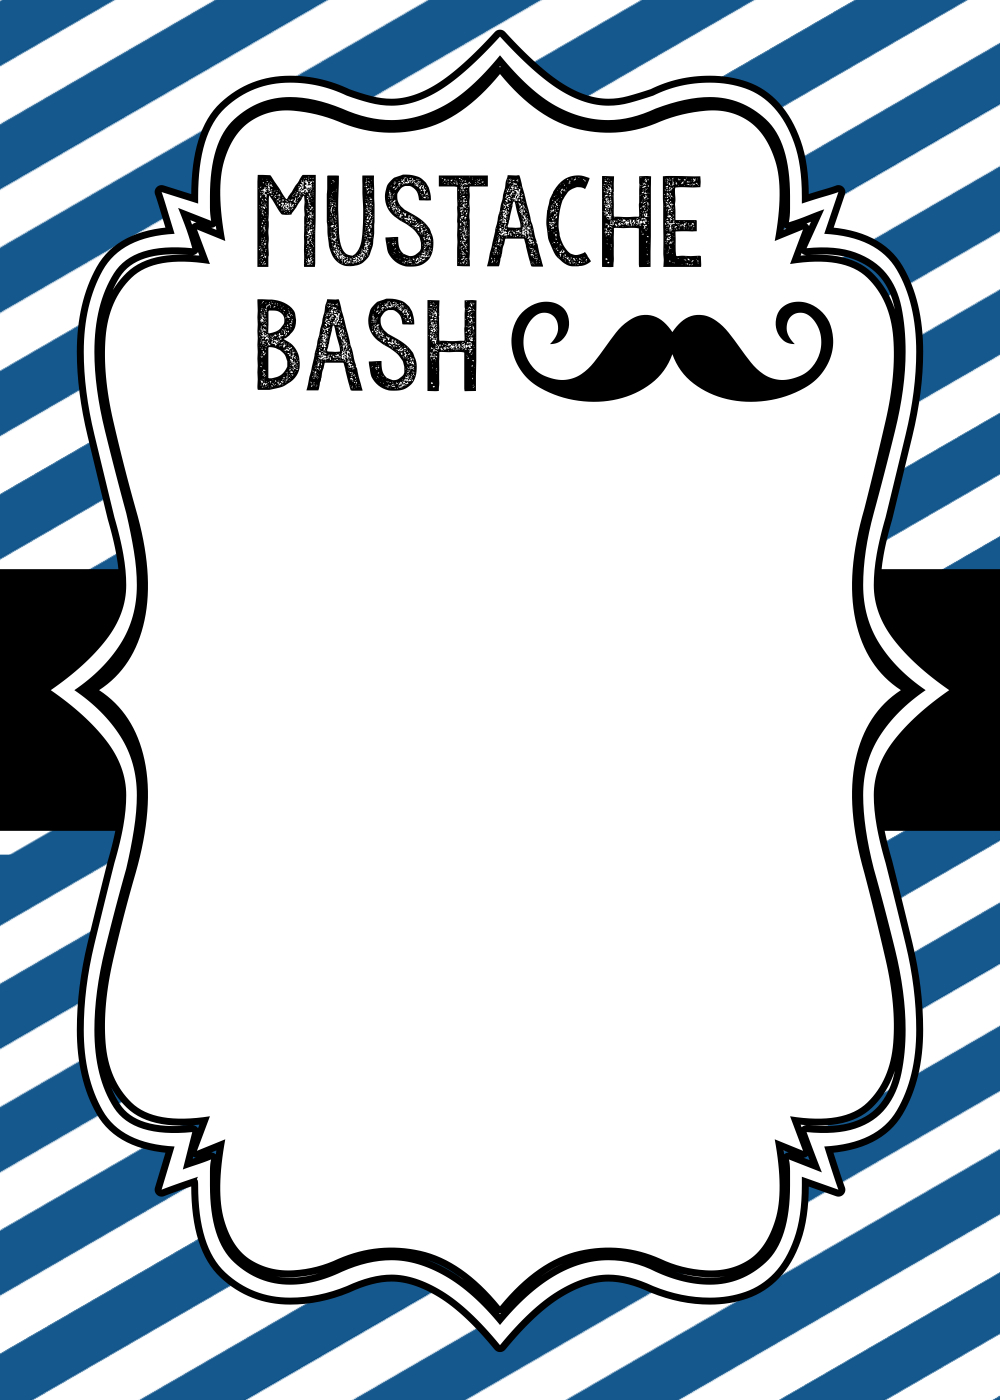 Mustache party baby shower or birthday invite paper trail design mustache invitation 1 filmwisefo Image collections